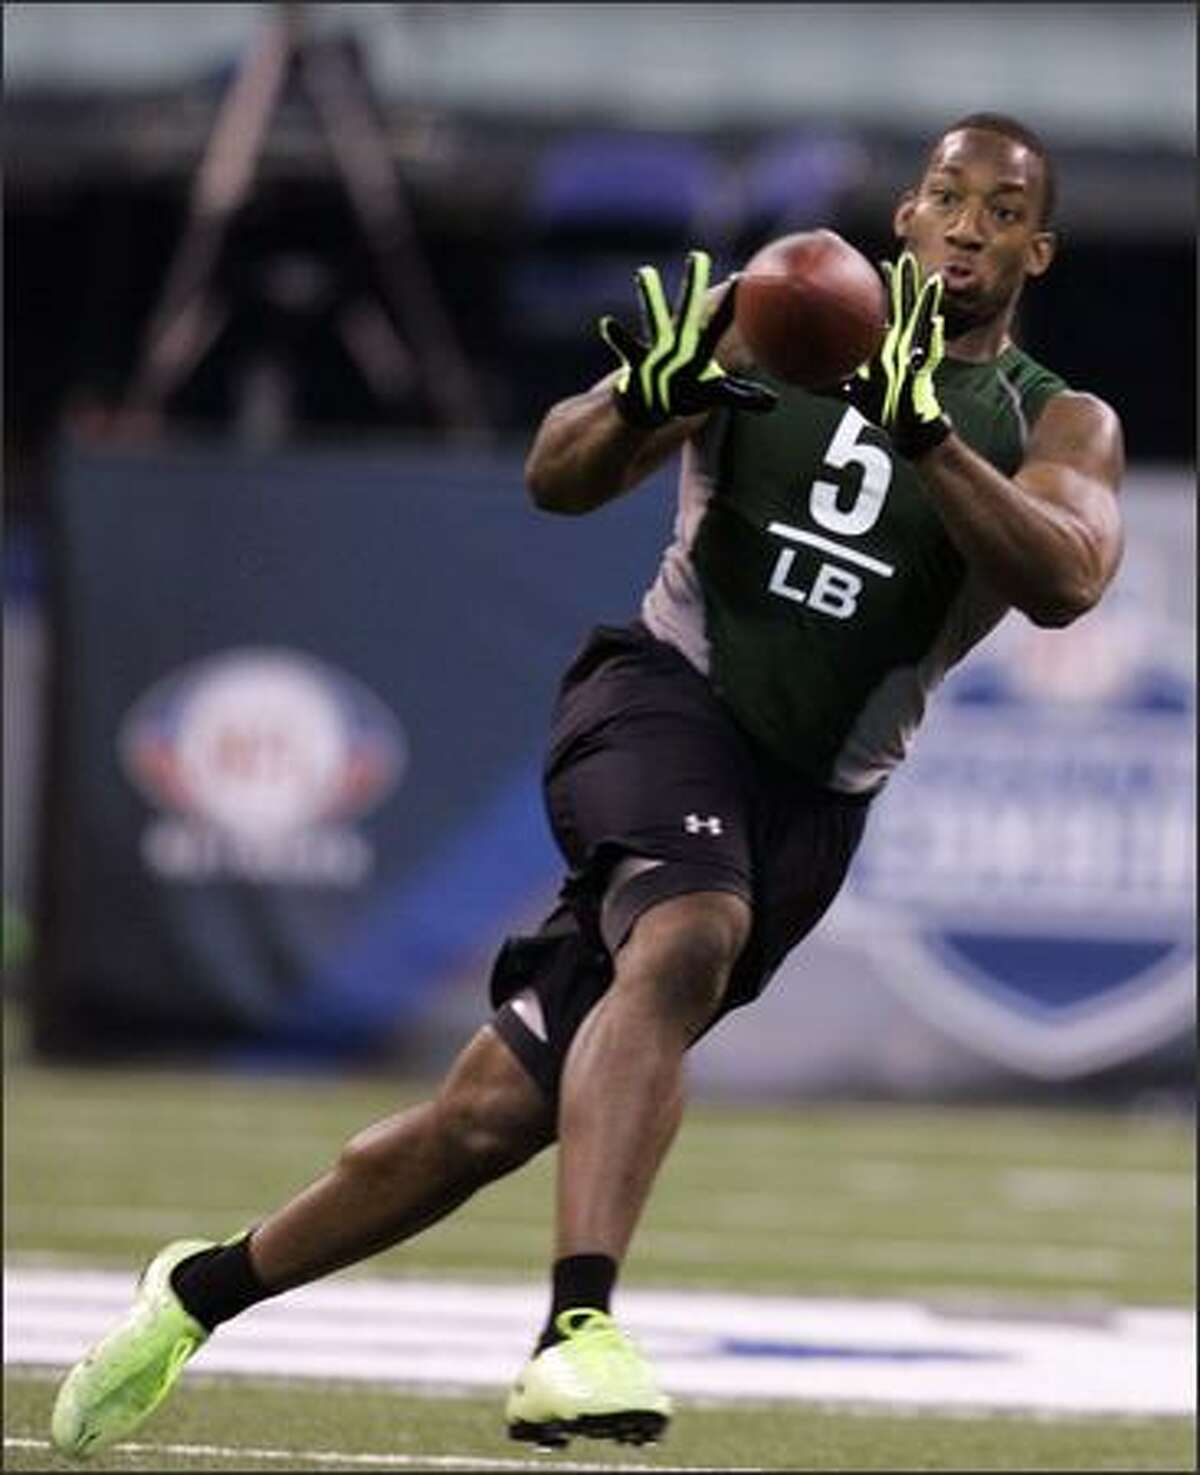 In this Feb. 23, 2009 file photo, Wake Forest linebacker Aaron Curry runs a drill at the NFL football scouting combine in Indianapolis. Curry is a top prospect in the 2009 NFL Draft. (AP Photo/Darron Cummings, File)